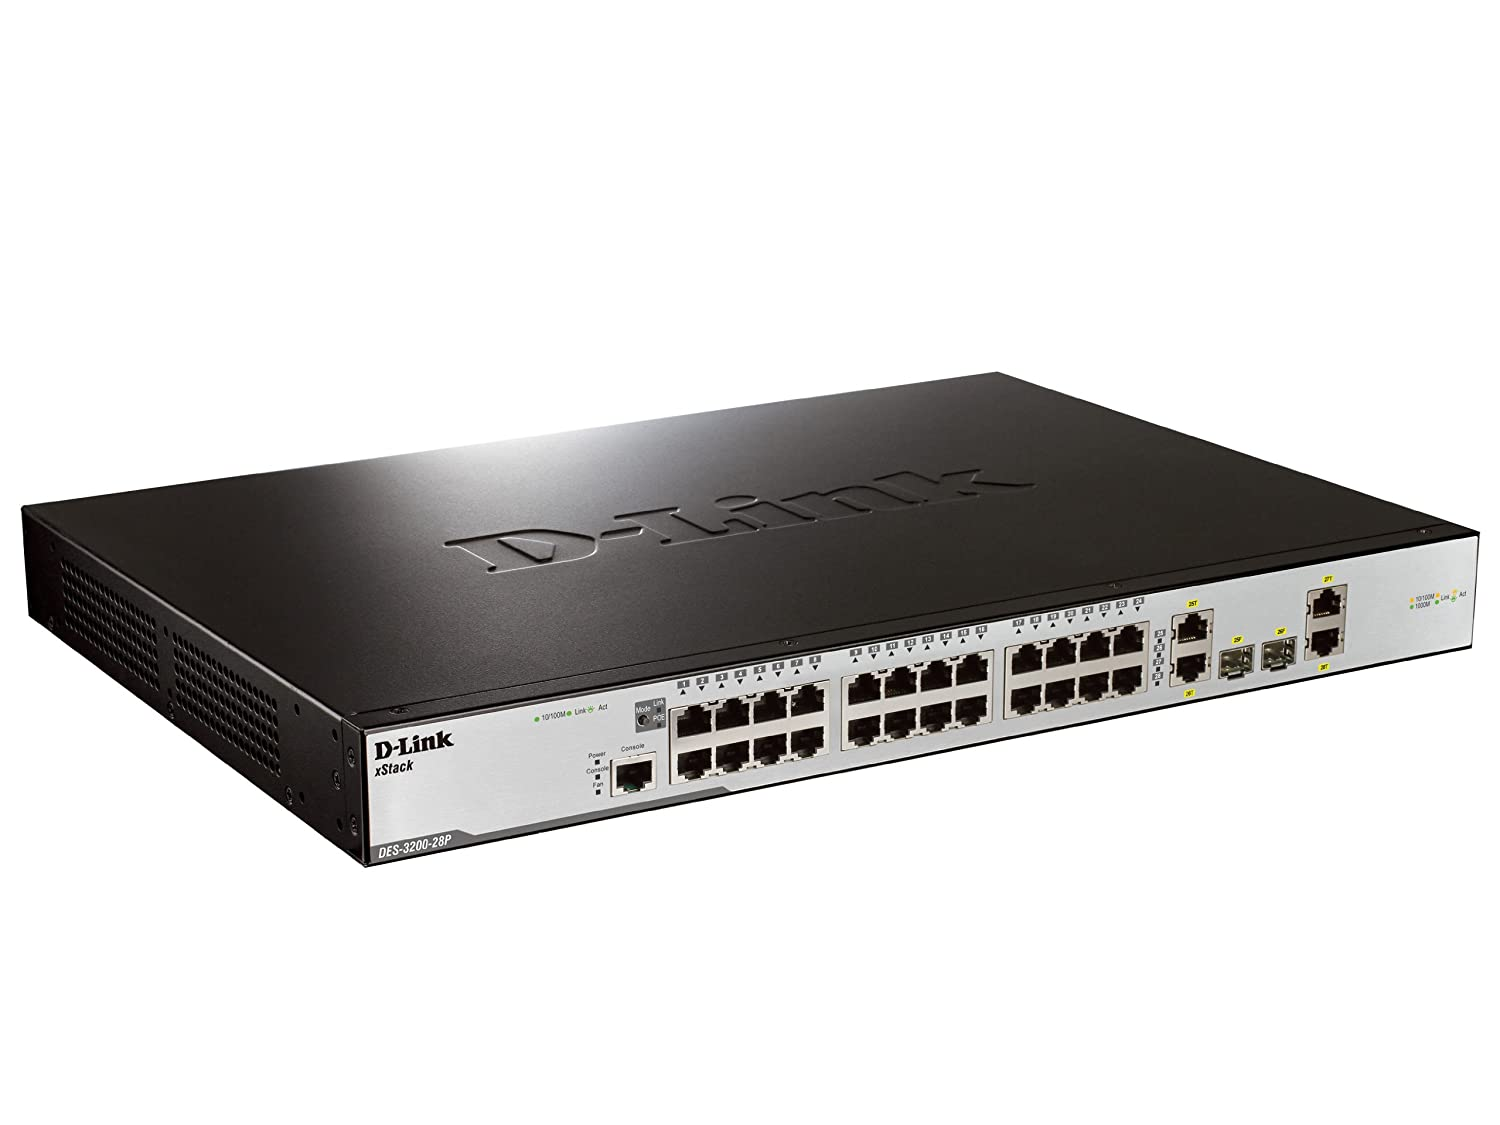 DLINK DGS-3200 Series Drivers for Windows 10